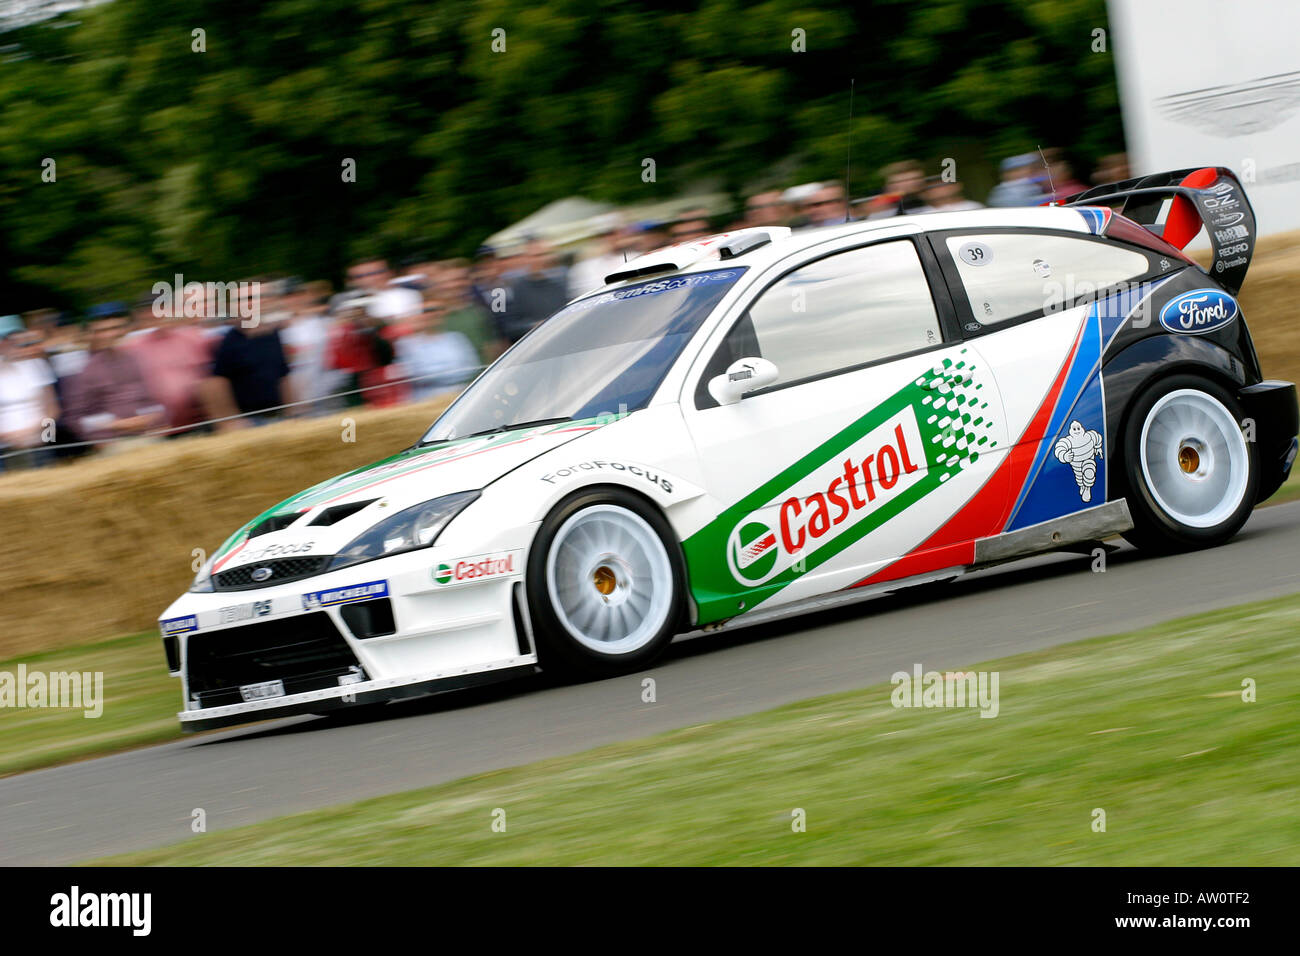 Ford Focus Wrc Stock Photos & Ford Focus Wrc Stock Images - Alamy